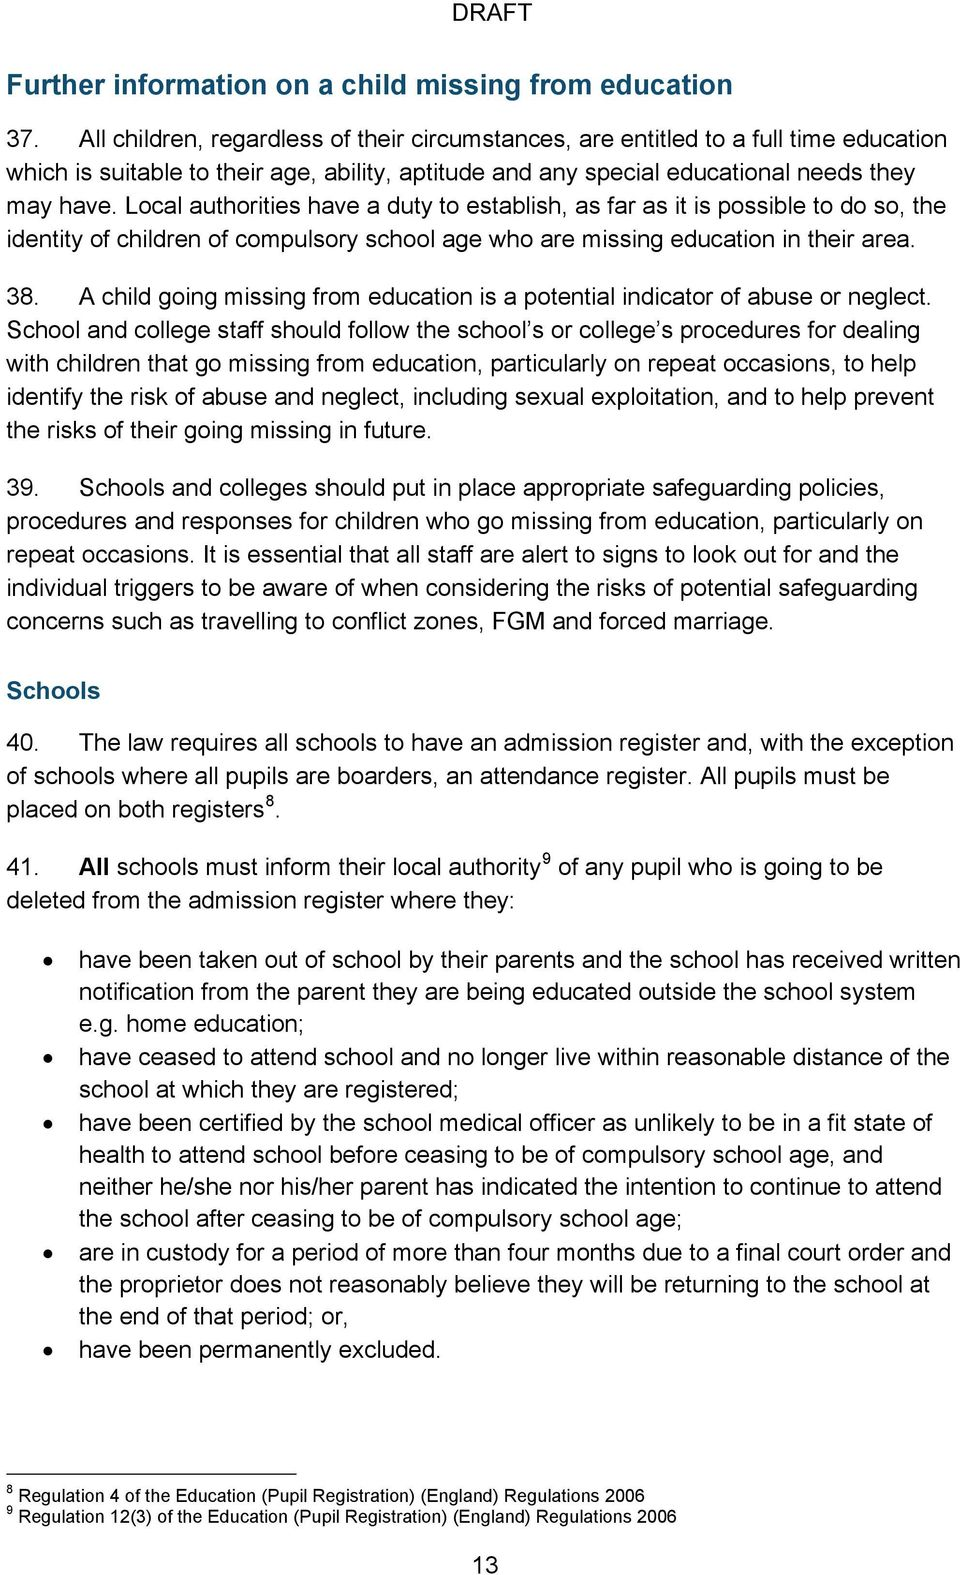 Local authorities have a duty to establish, as far as it is possible to do so, the identity of children of compulsory school age who are missing education in their area. 38.